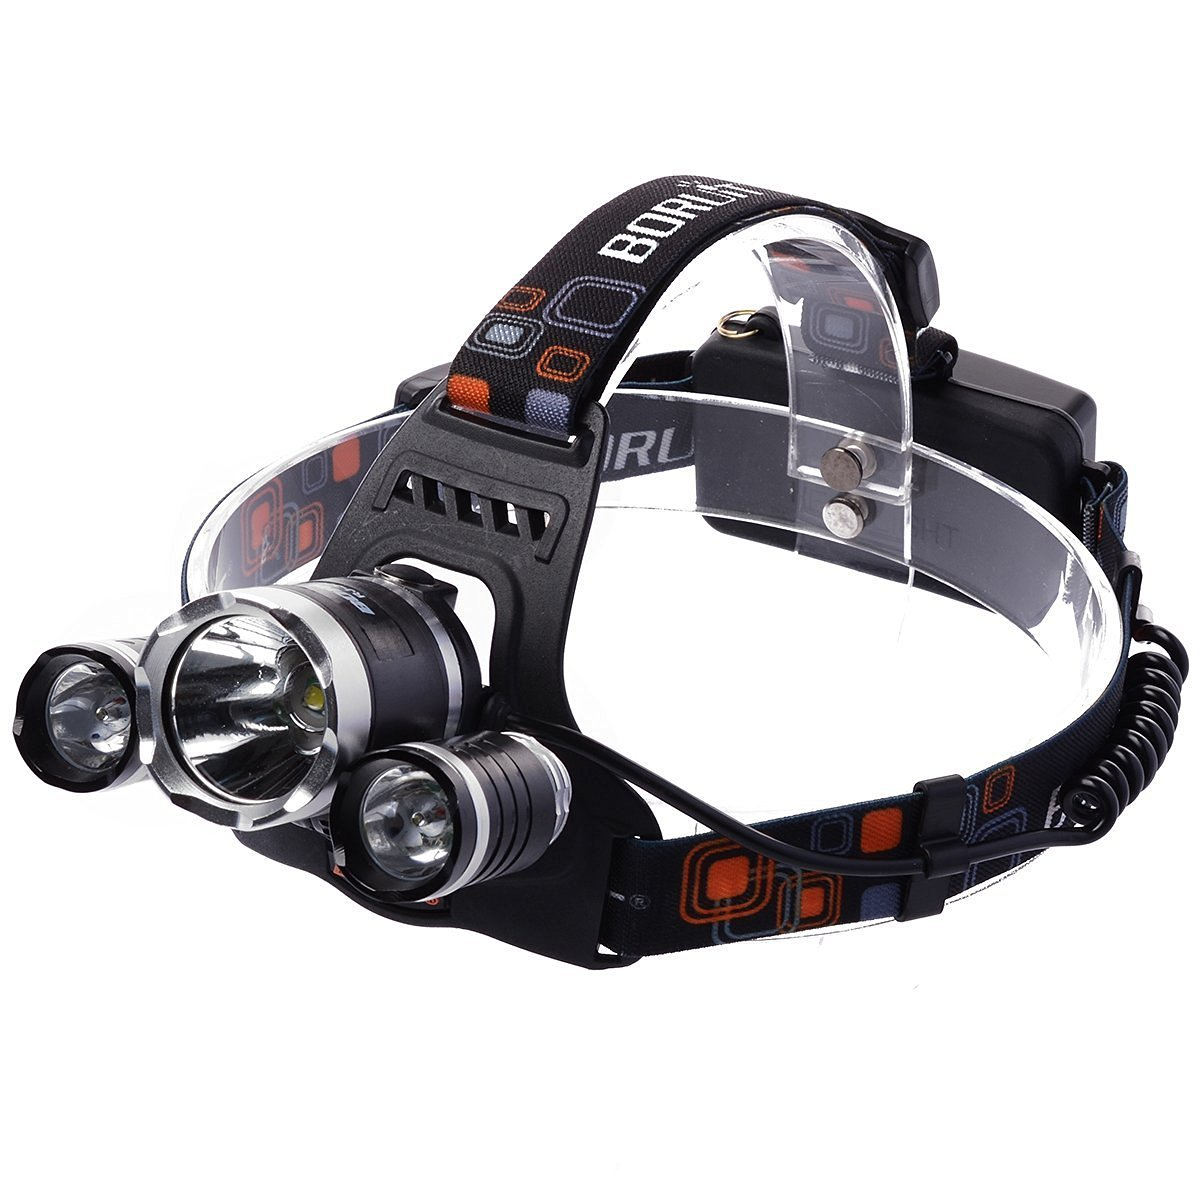 BESTSUN Bike Light HeadLamp 5000 Lumen LM LED Bicycle HeadLight 4 Modes CREE XM-L XML 3 x T6 LED Headlight Light Headlamp Head Lamp Flashlight with USB Charging Cable Powered by Power Bank External Power Tablet Computer For Hiking Camping Hunting Night Riding Caving (Battery not included)